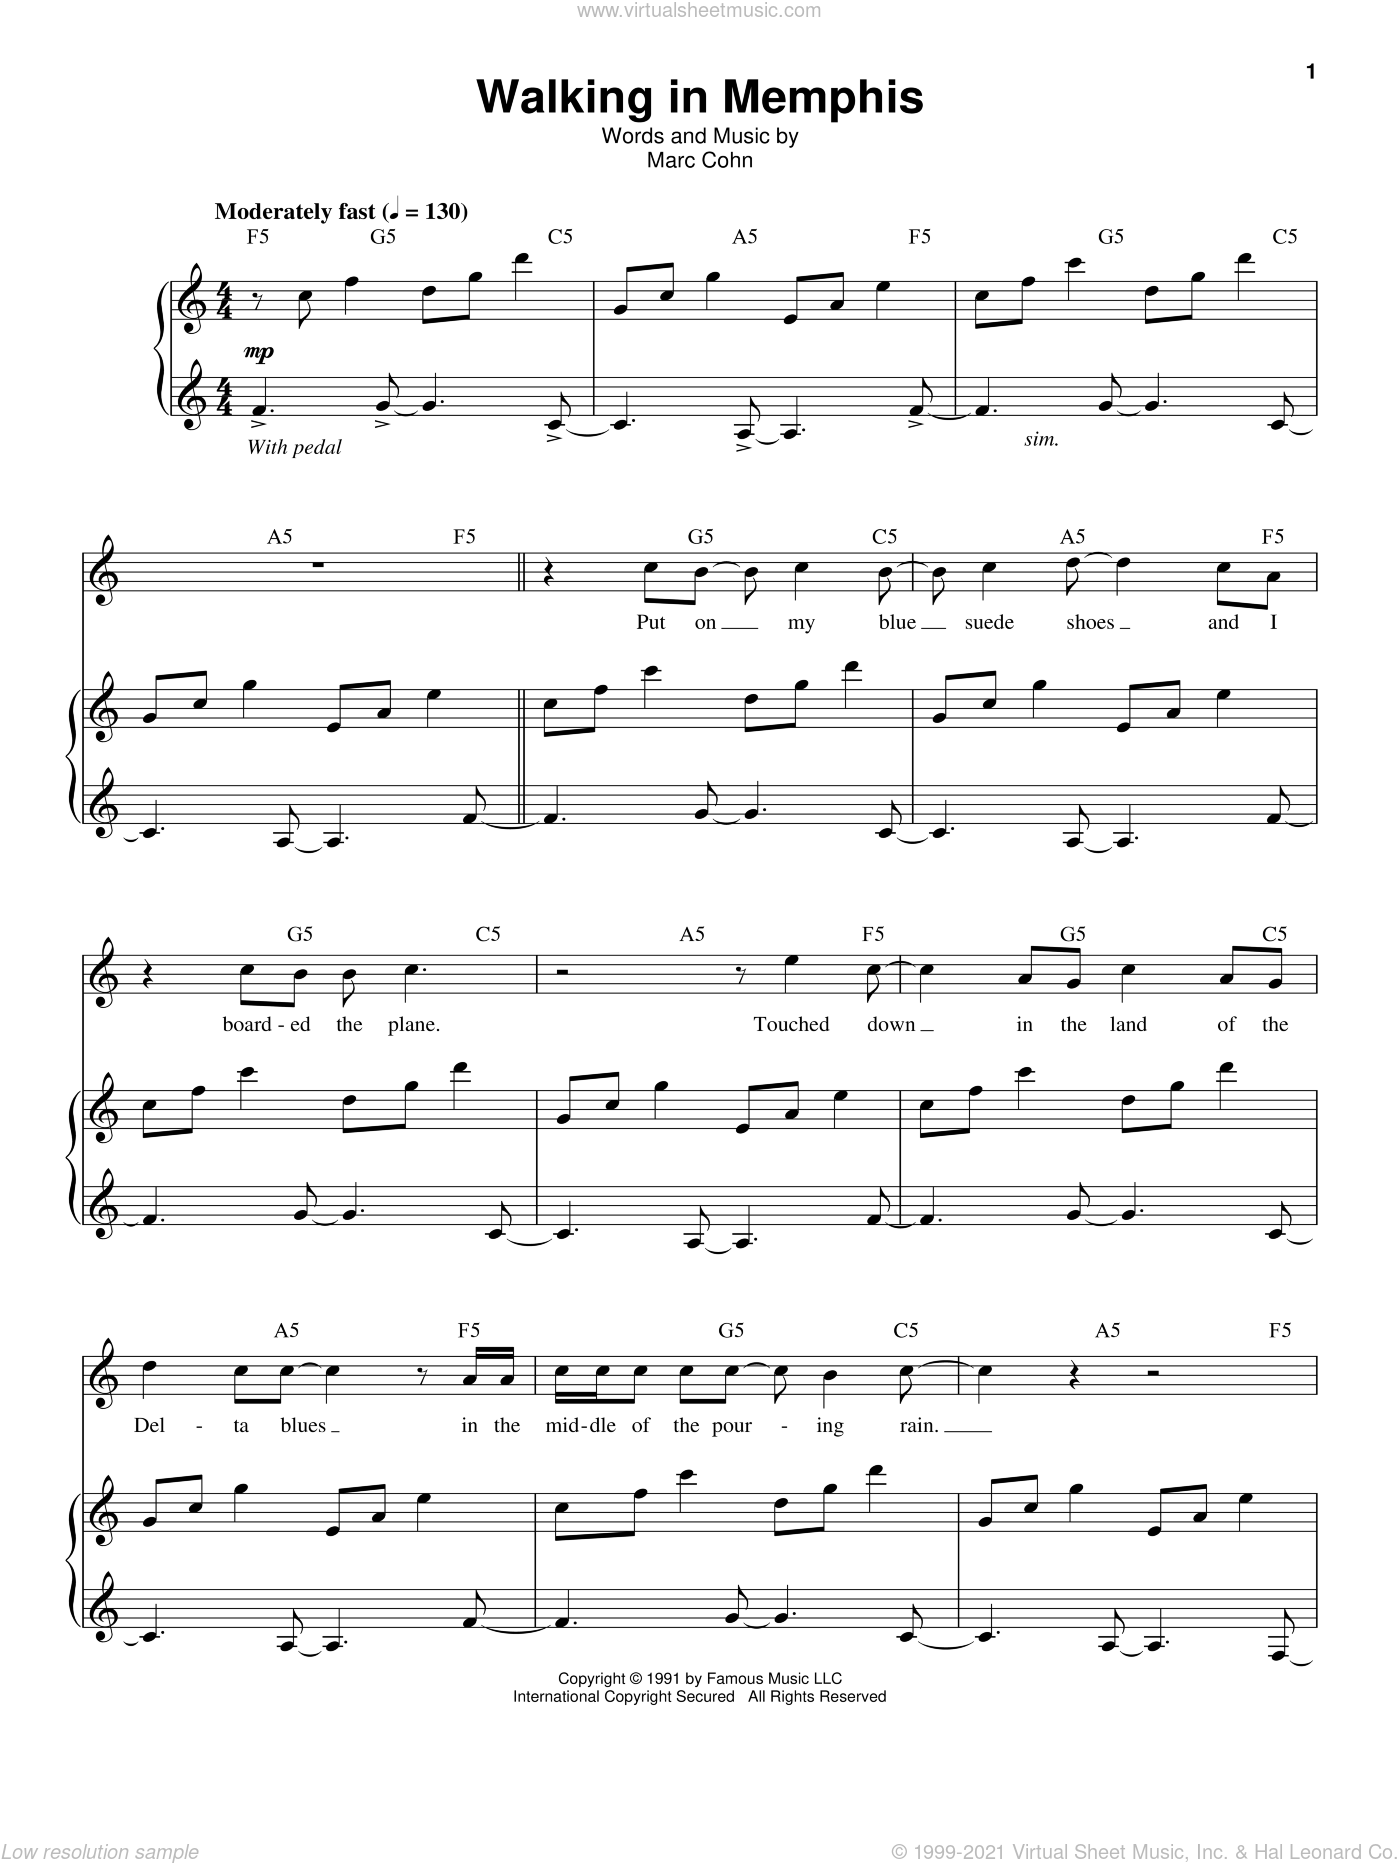 Walking In Memphis sheet music for voice and piano by Marc Cohn